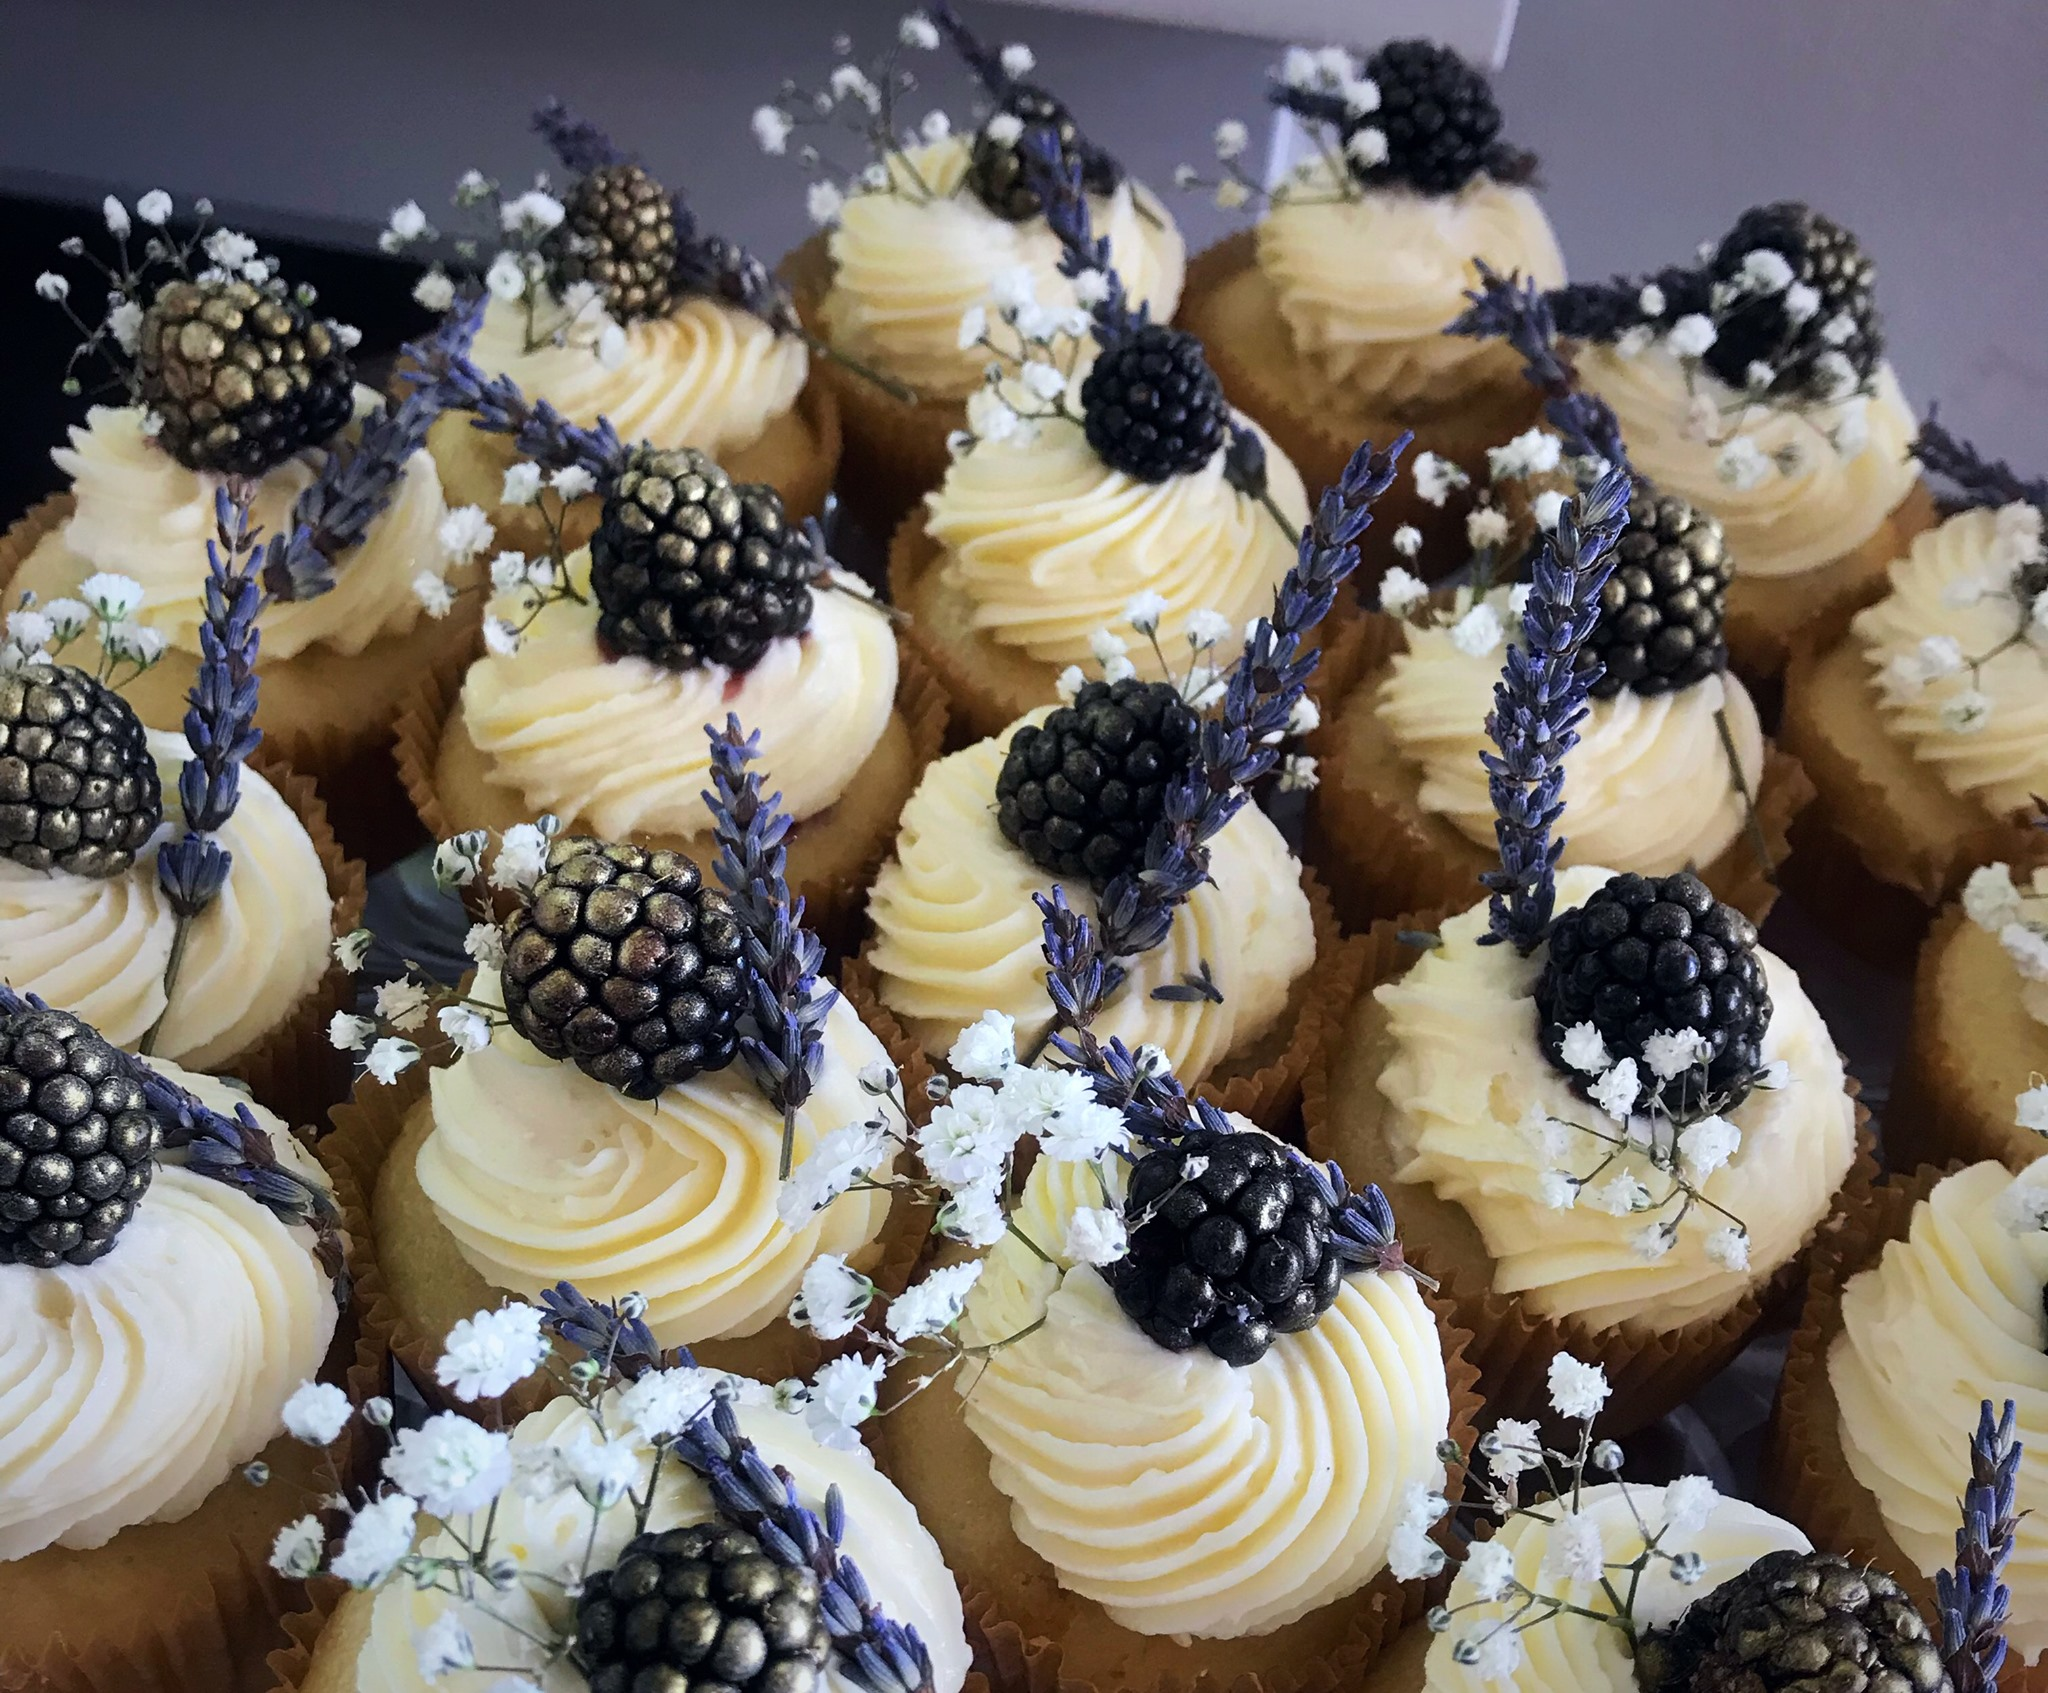 Blackberry Lavender Jam w/ White Chocolate Buttercream Frosting Cupcakes